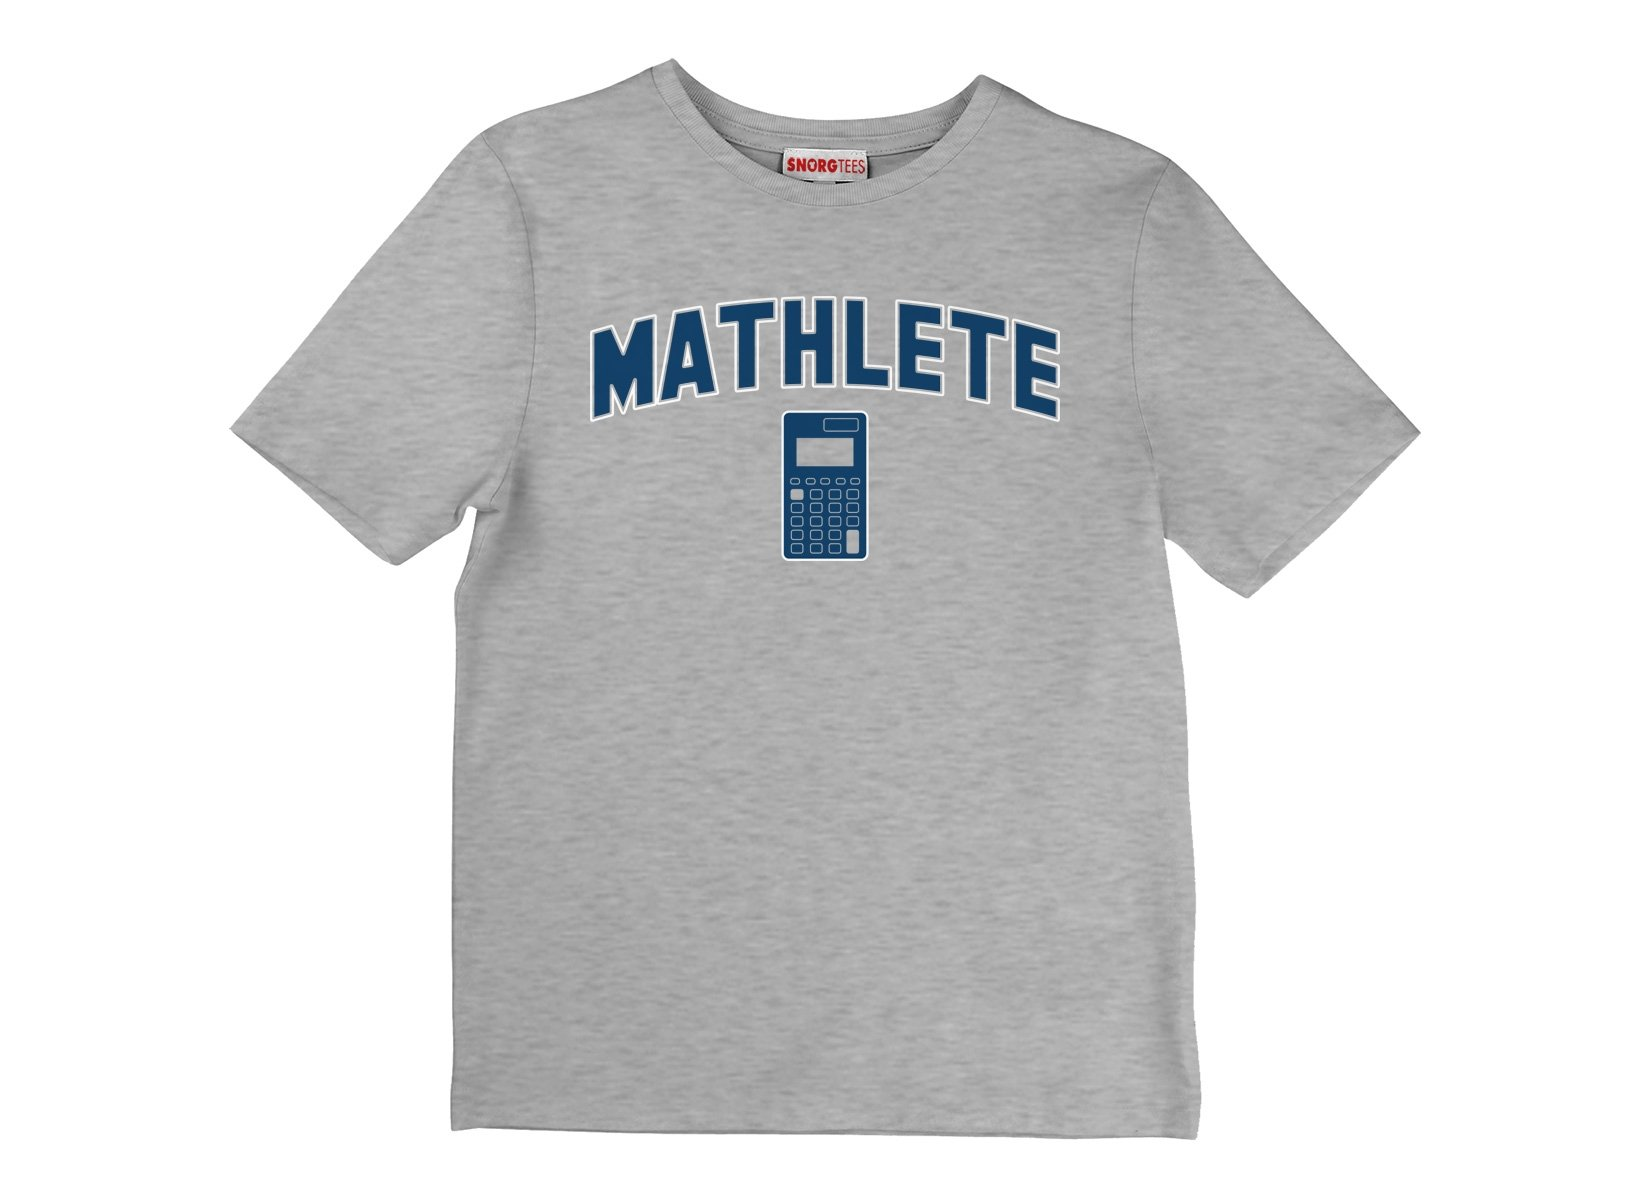 Mathlete on Kids T-Shirt